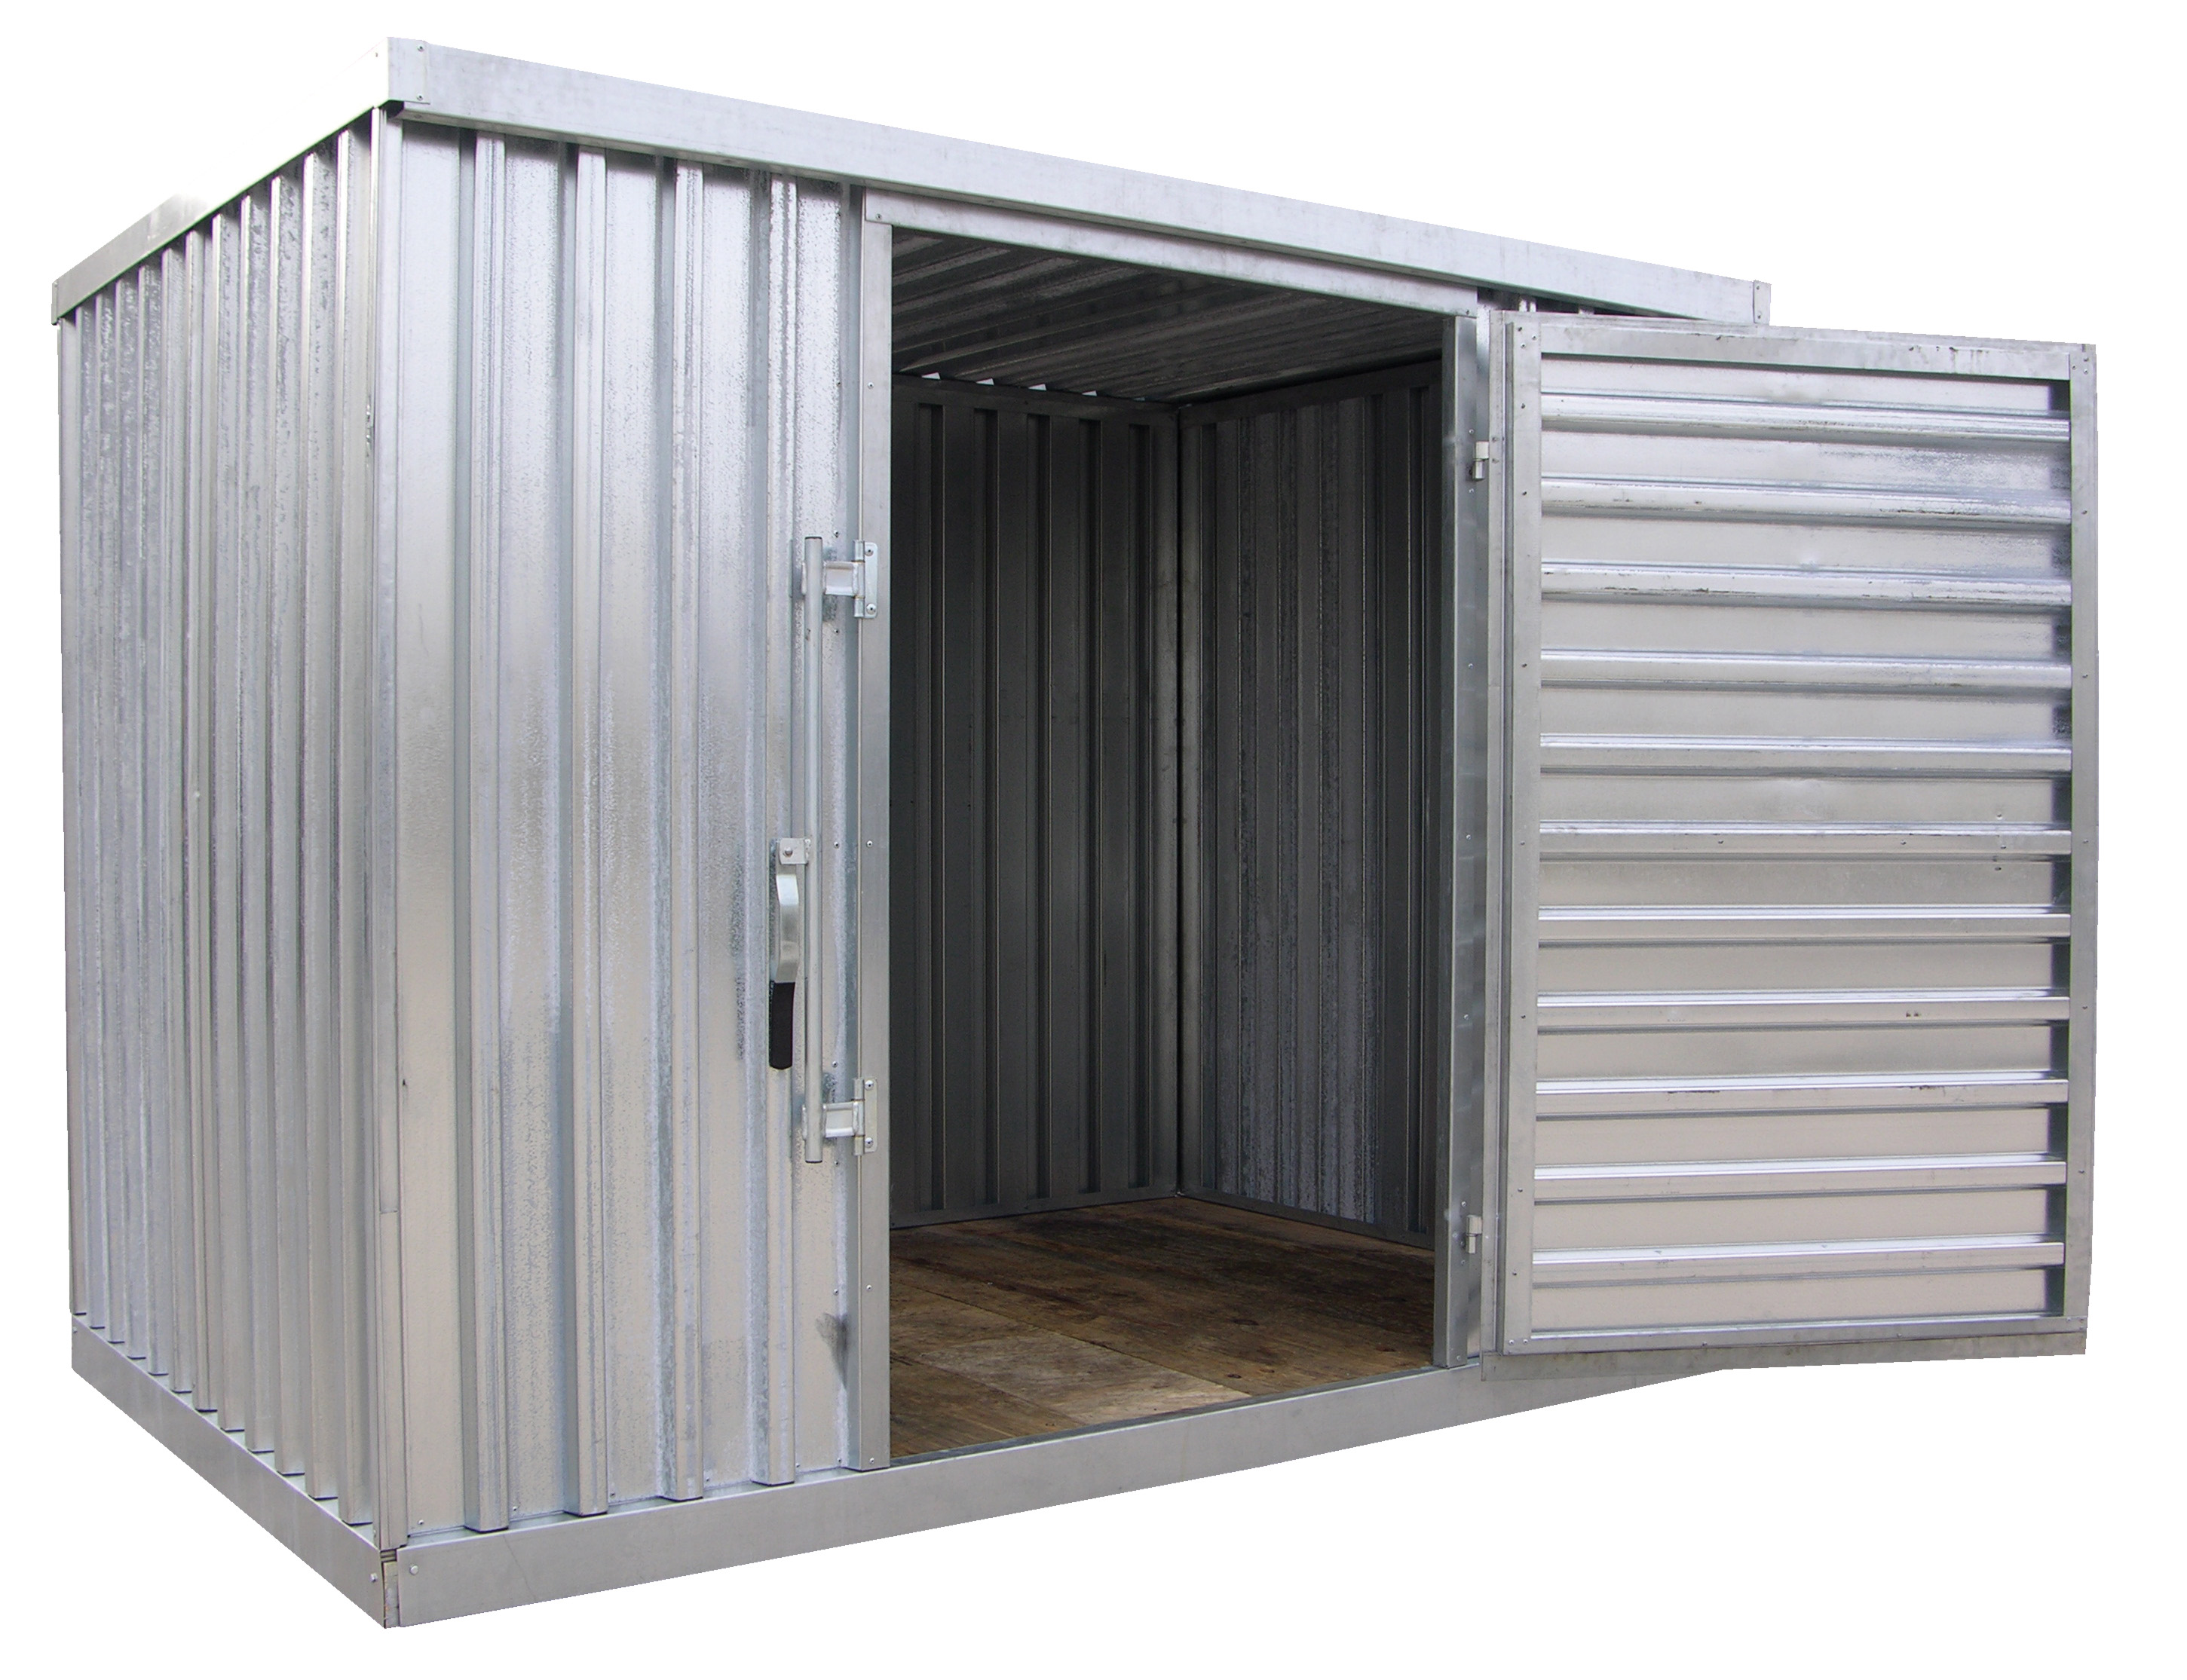 Prefabricated custom built outdoor bus prefab smokers for Outdoor storage shelter